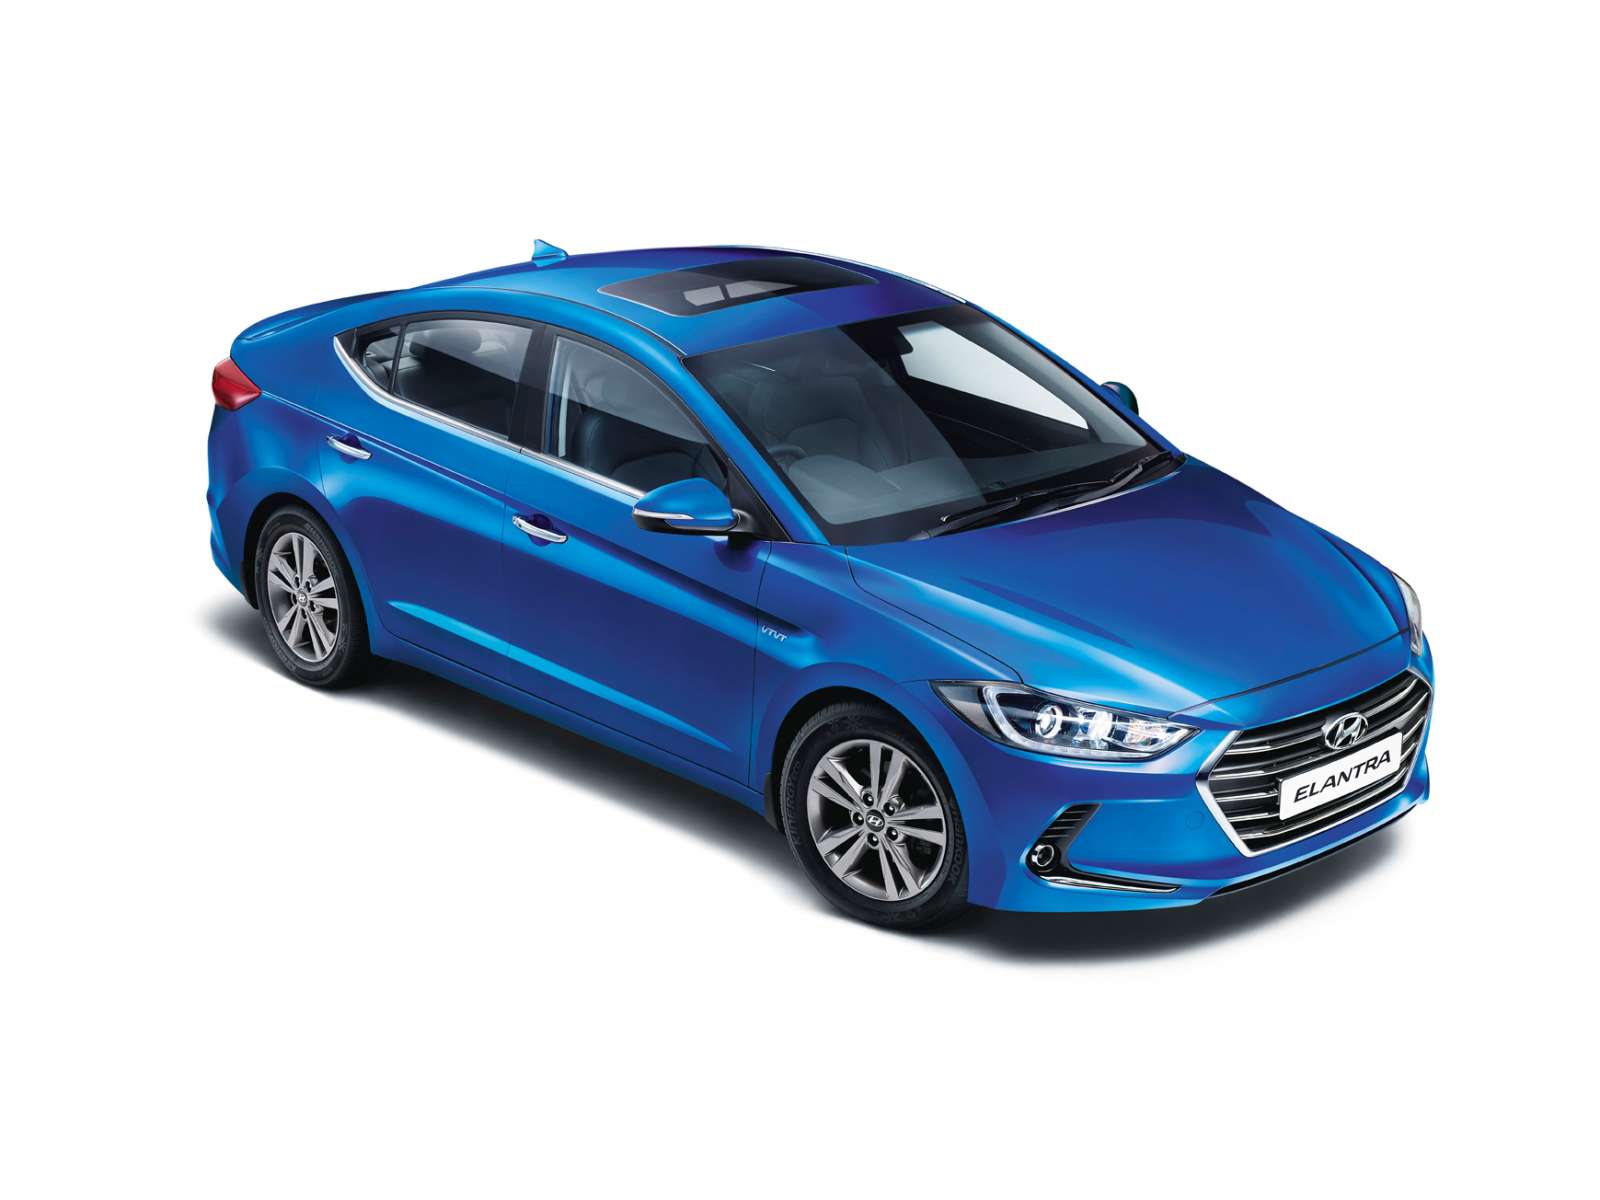 Hyundai Elantra Wallpapers Free Download